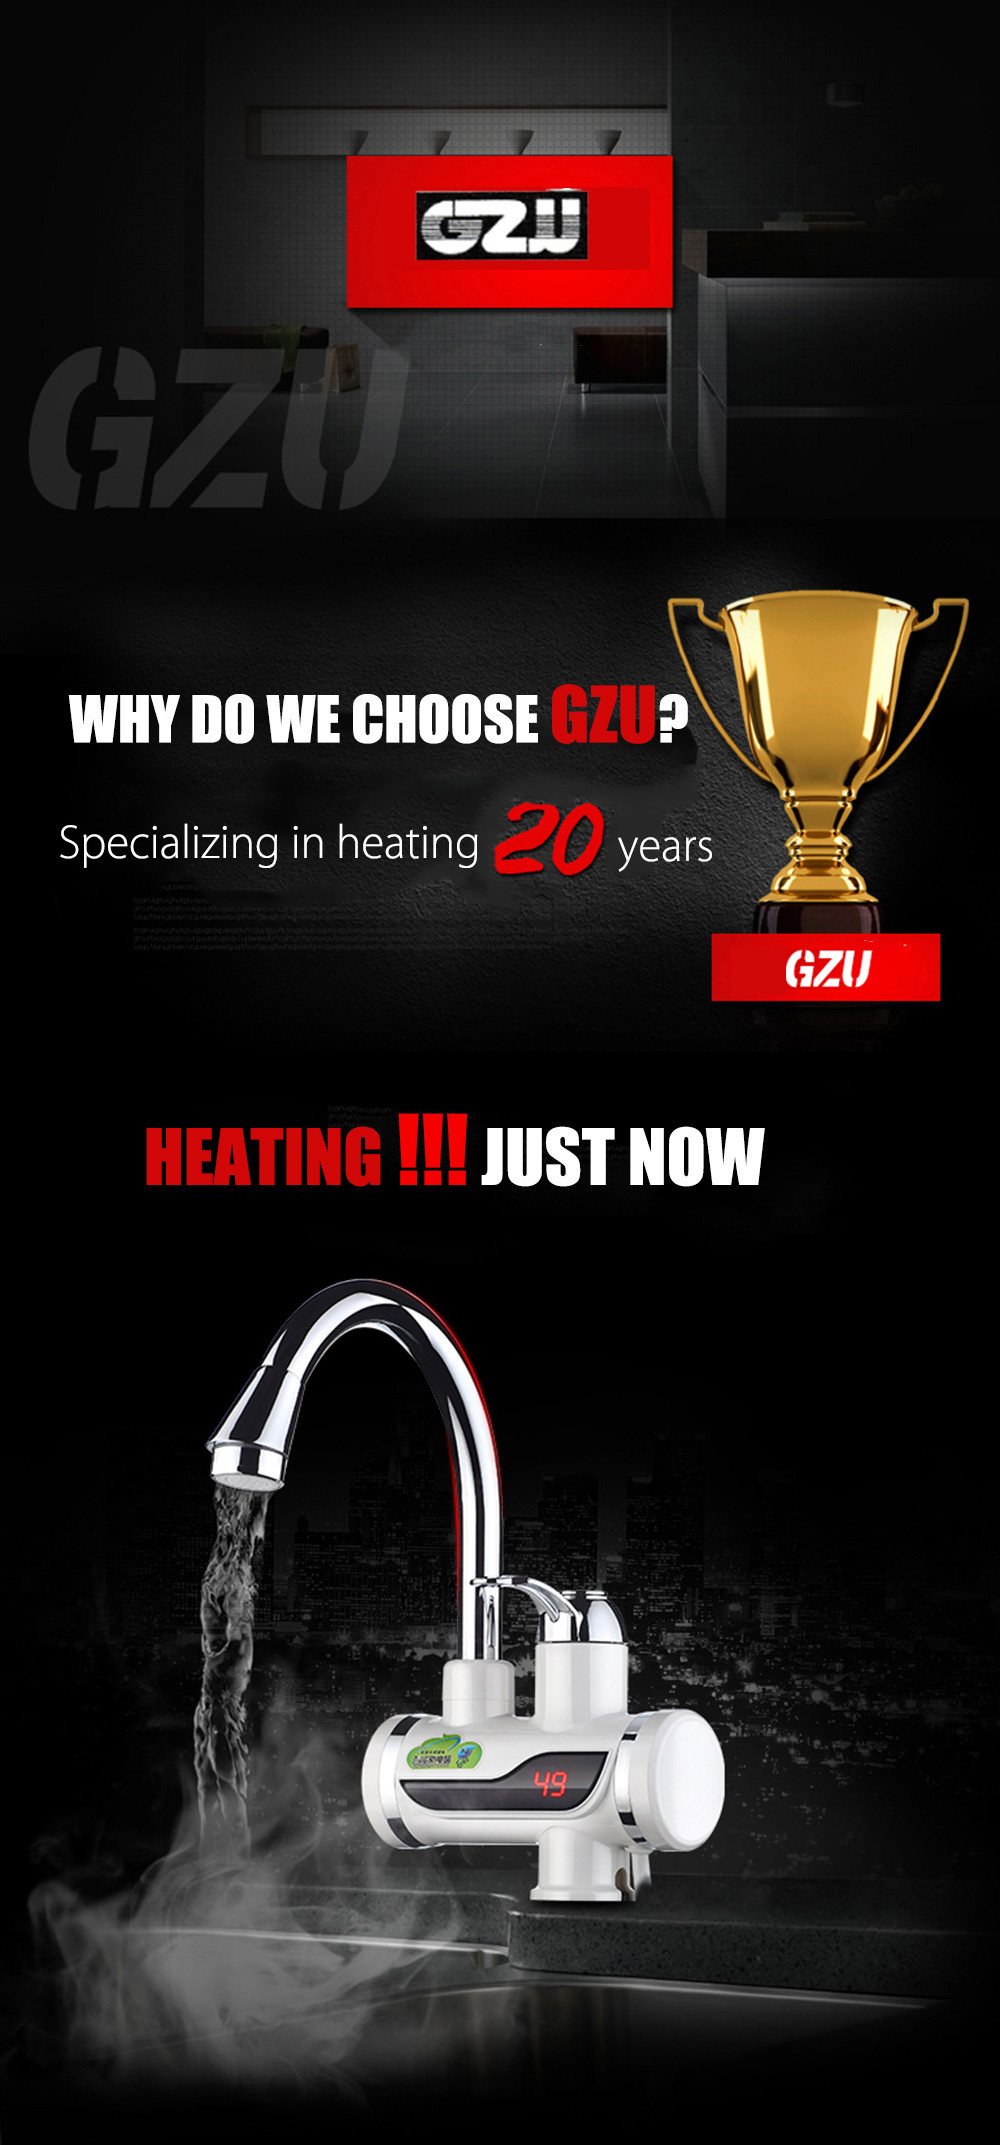 GZU ZM - D4 Tankless Water Heater Faucet - $44.22 Free Shipping ...